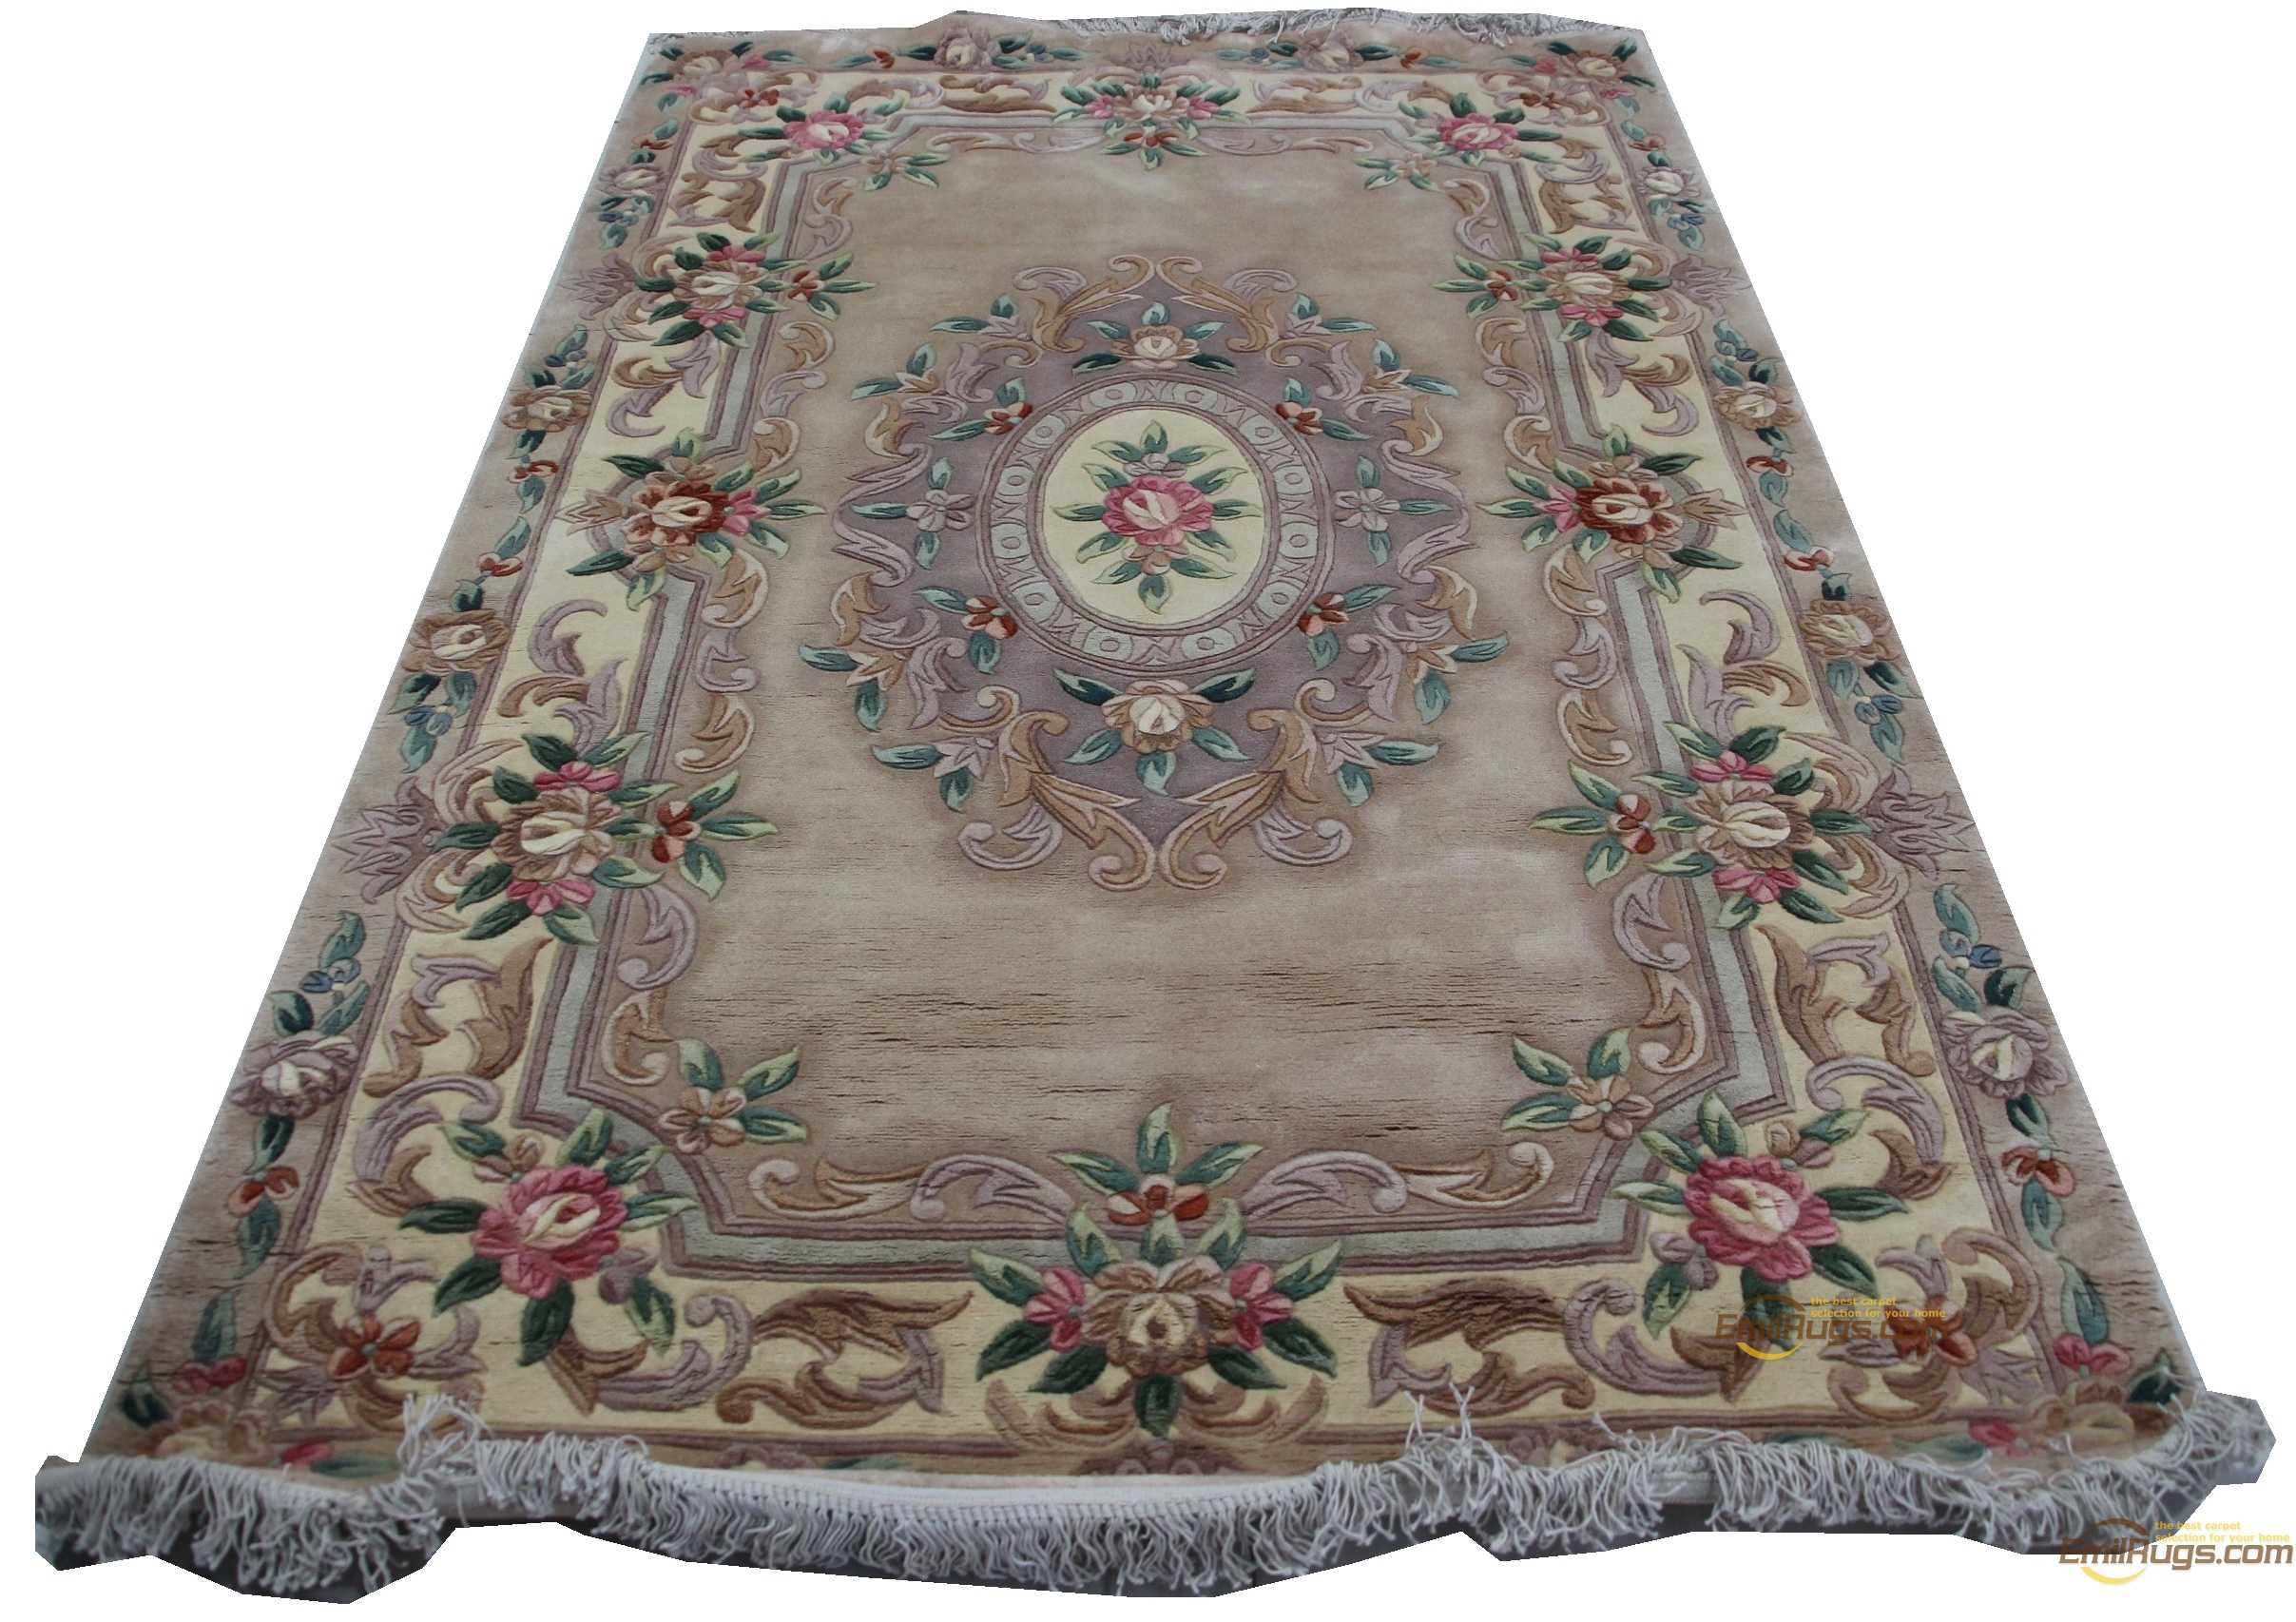 Soft Carpets For Living Room Hand-knotted Thick Plush Wool French  Rug Woven Antique Decor Runner Rug The Plant Design